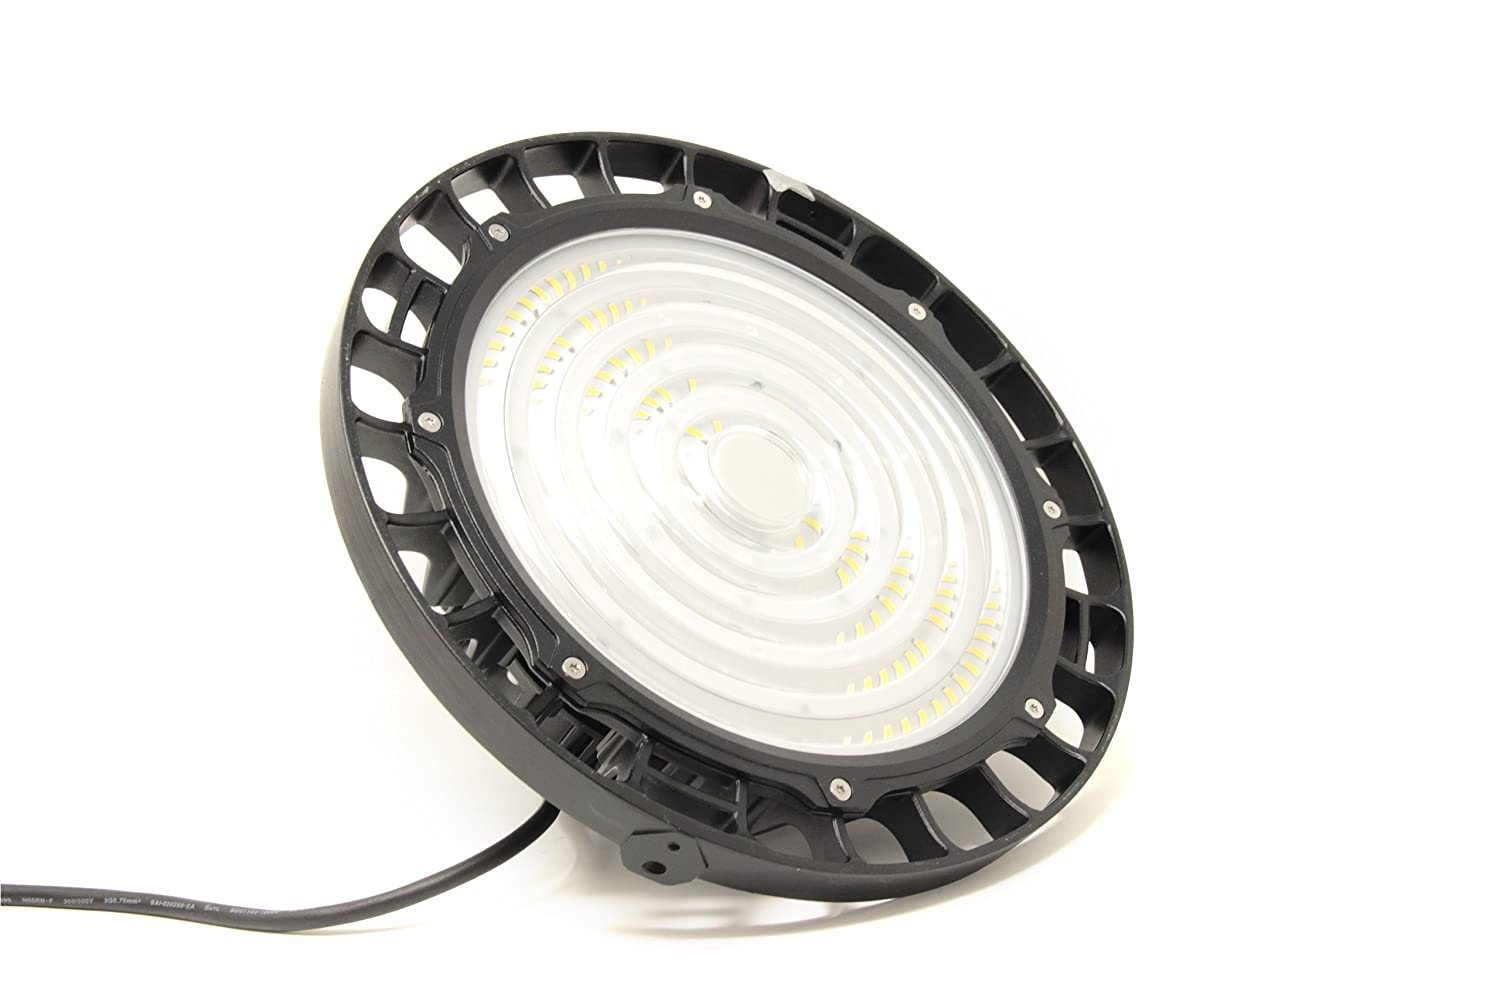 FactorLED Campana industrial LED UFO 100W Chip Brigdelux 3030-3D 150lm/w Dimable TRIAC Iluminación industrial ideal para naves industriales IP65, ...